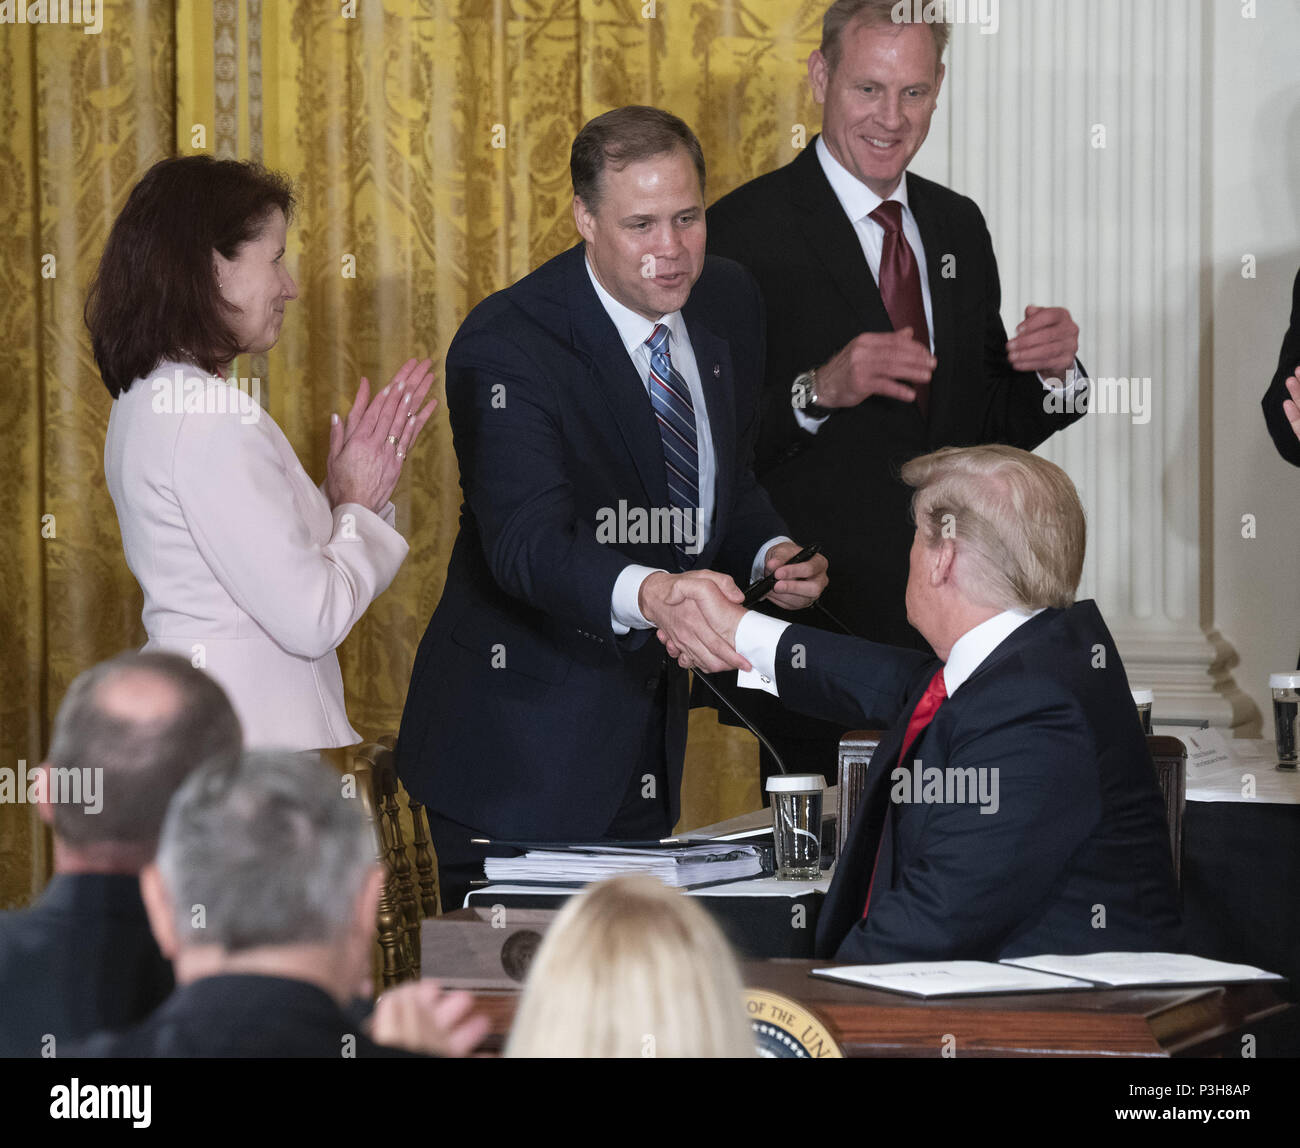 Washington, District of Columbia, USA. 18th June, 2018. United States President Donald J. Trump hands off the pen used to sign Space Policy Directive 3 to Jim Bridenstine, administrator of the during a meeting with the National Space Council at The White House in Washington, DC, June 18, 2018. The directive addresses issues including monitoring of objects in orbit, providing that information to spacecraft operators to avoid collisions, and to limit the growth of orbital debris. Chris Kleponis/CNP Credit: Chris Kleponis/CNP/ZUMA Wire/Alamy Live News - Stock Image